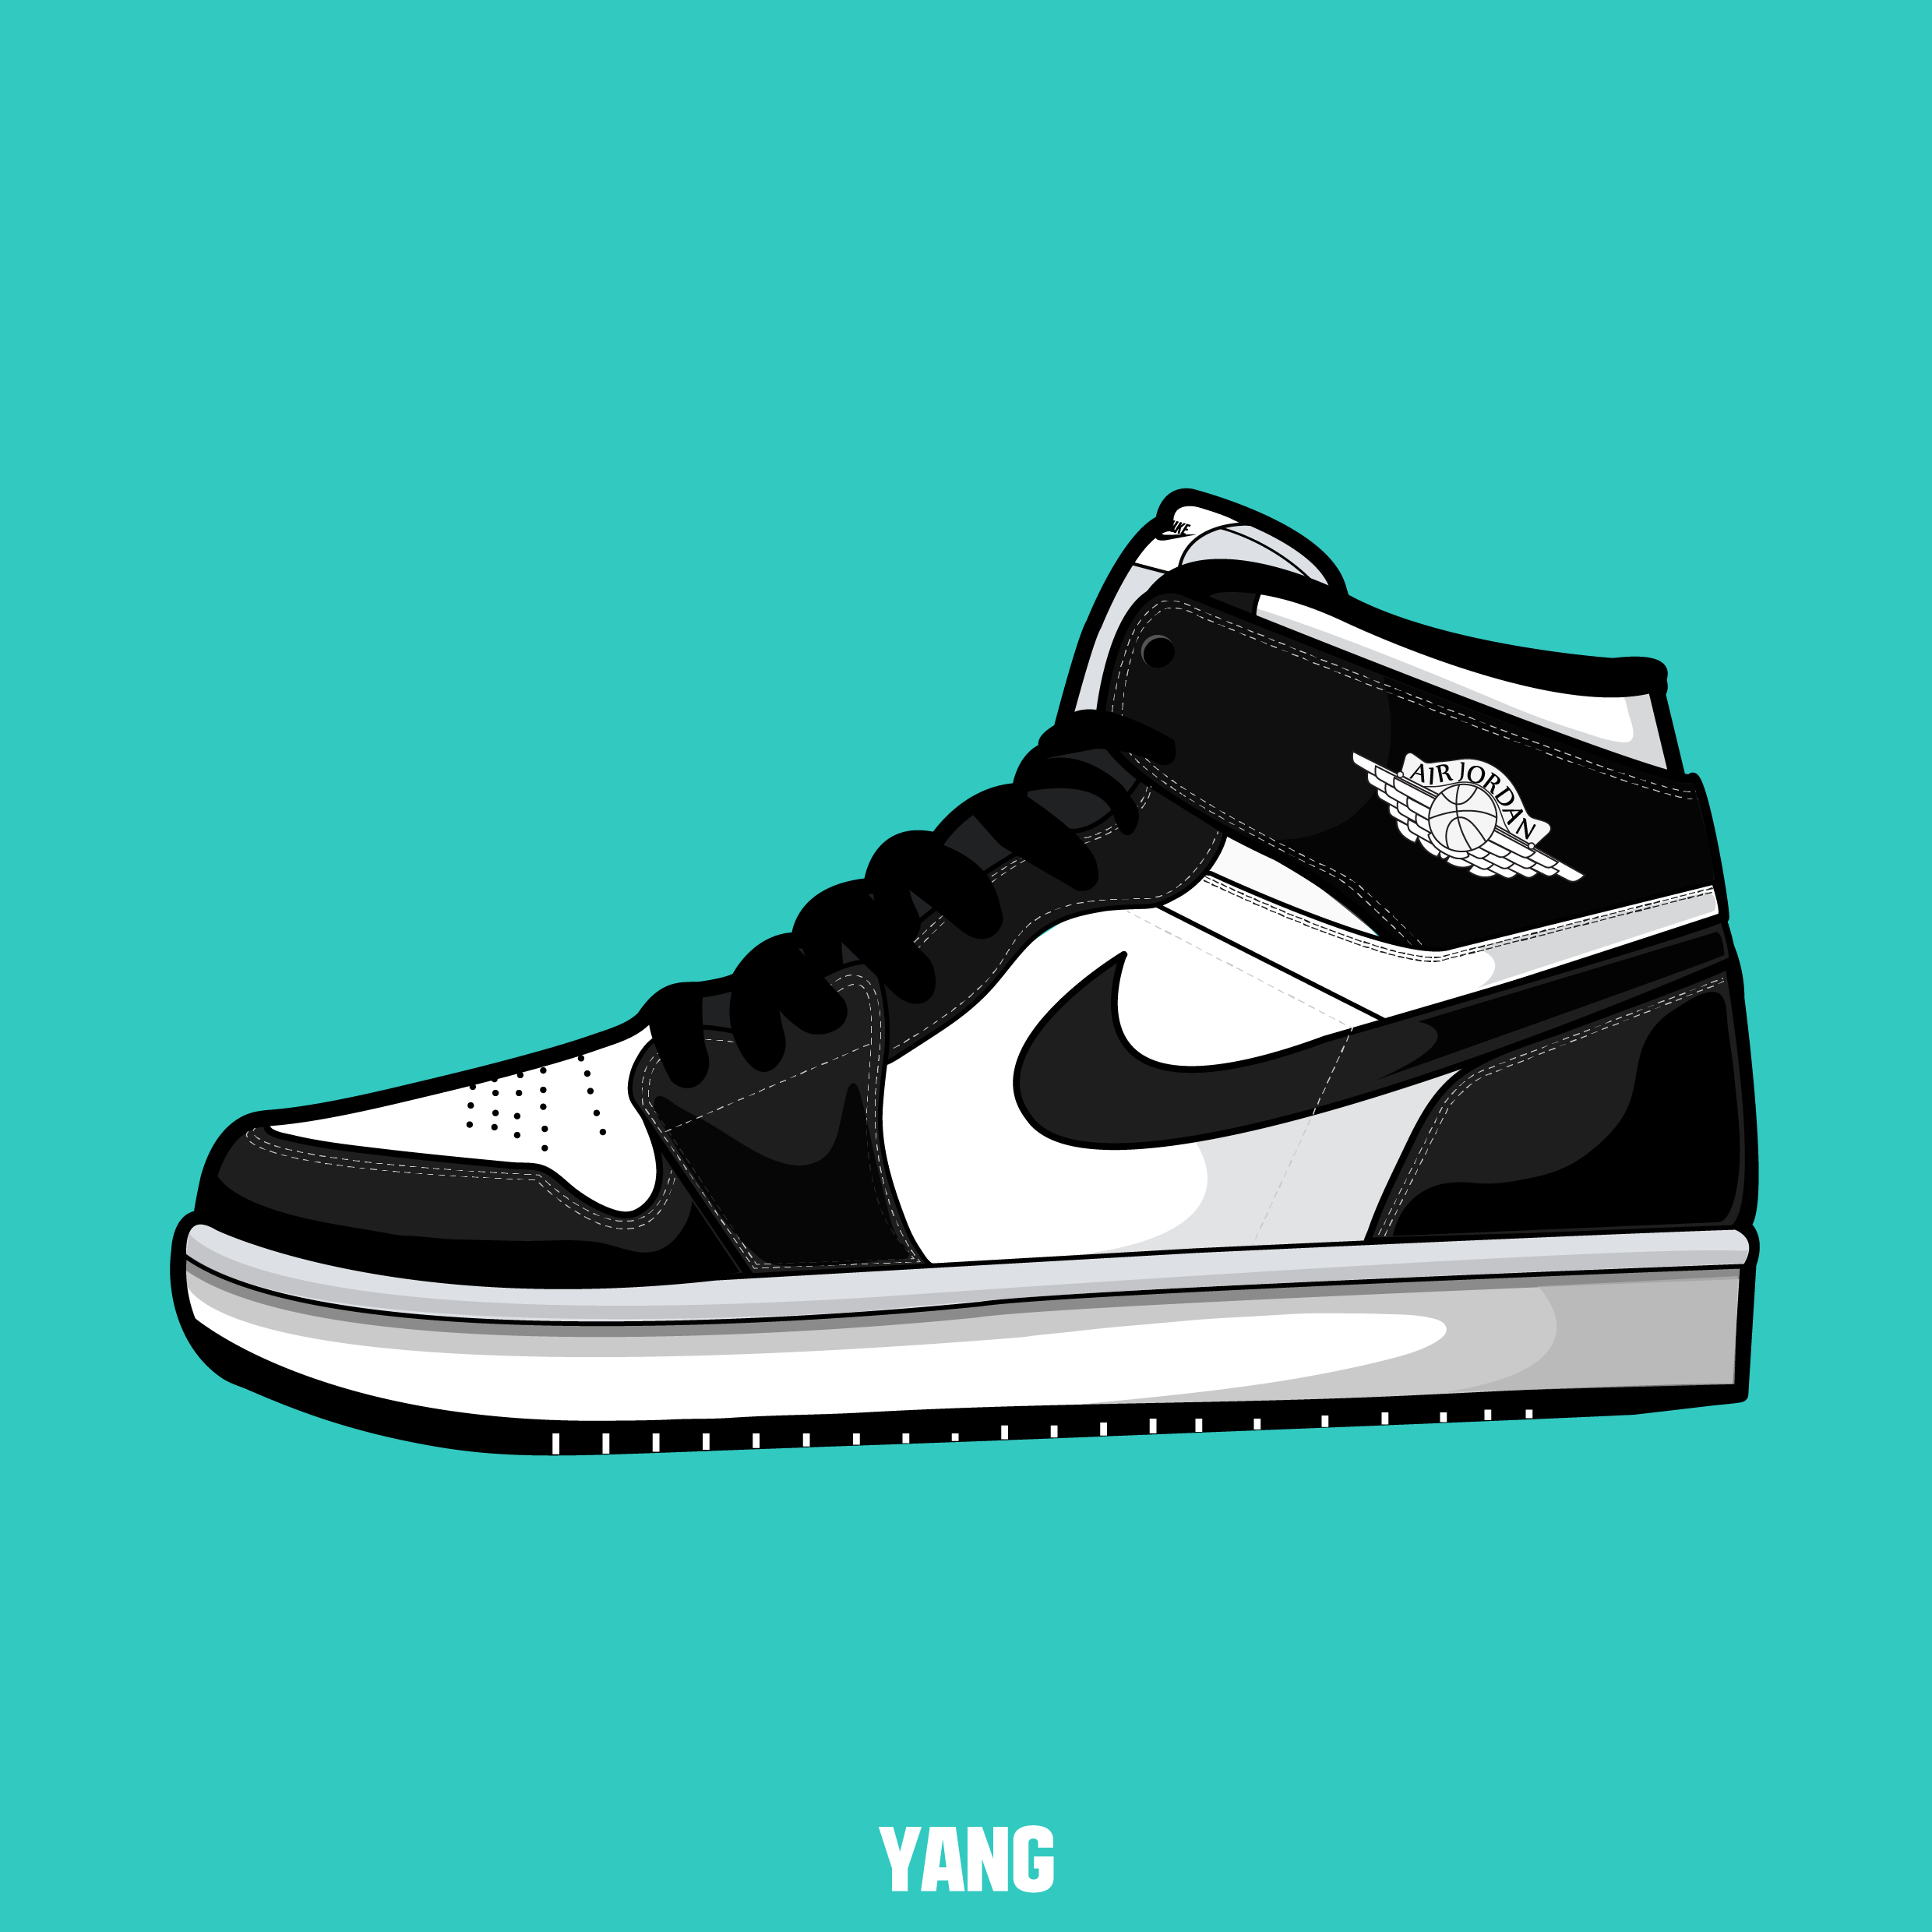 2480x2480 Drawing, Shoes, Sneakers, Nike, Air, Jordan, Carmine,graphic